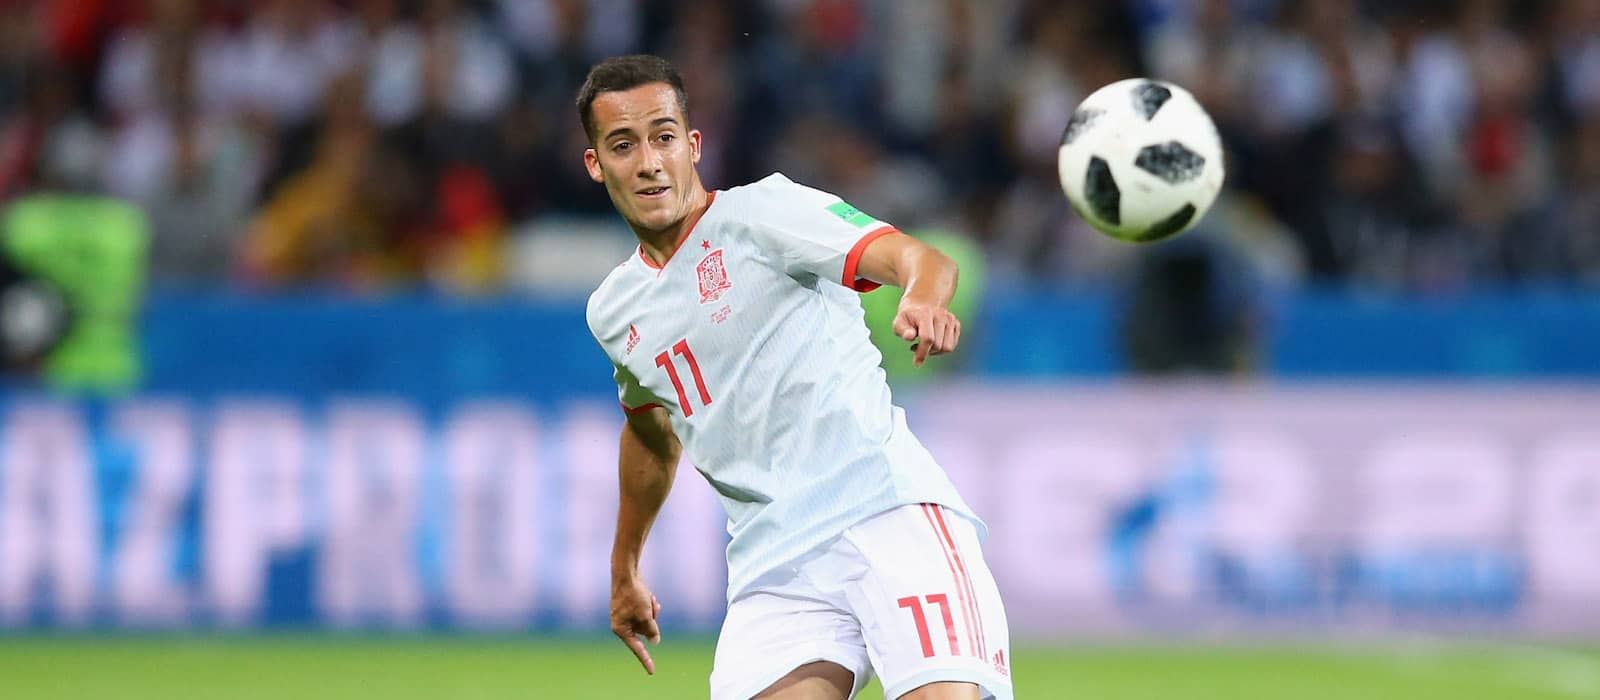 Report: Manchester United eyeing Lucas Vazquez as potential Anthony Martial replacement